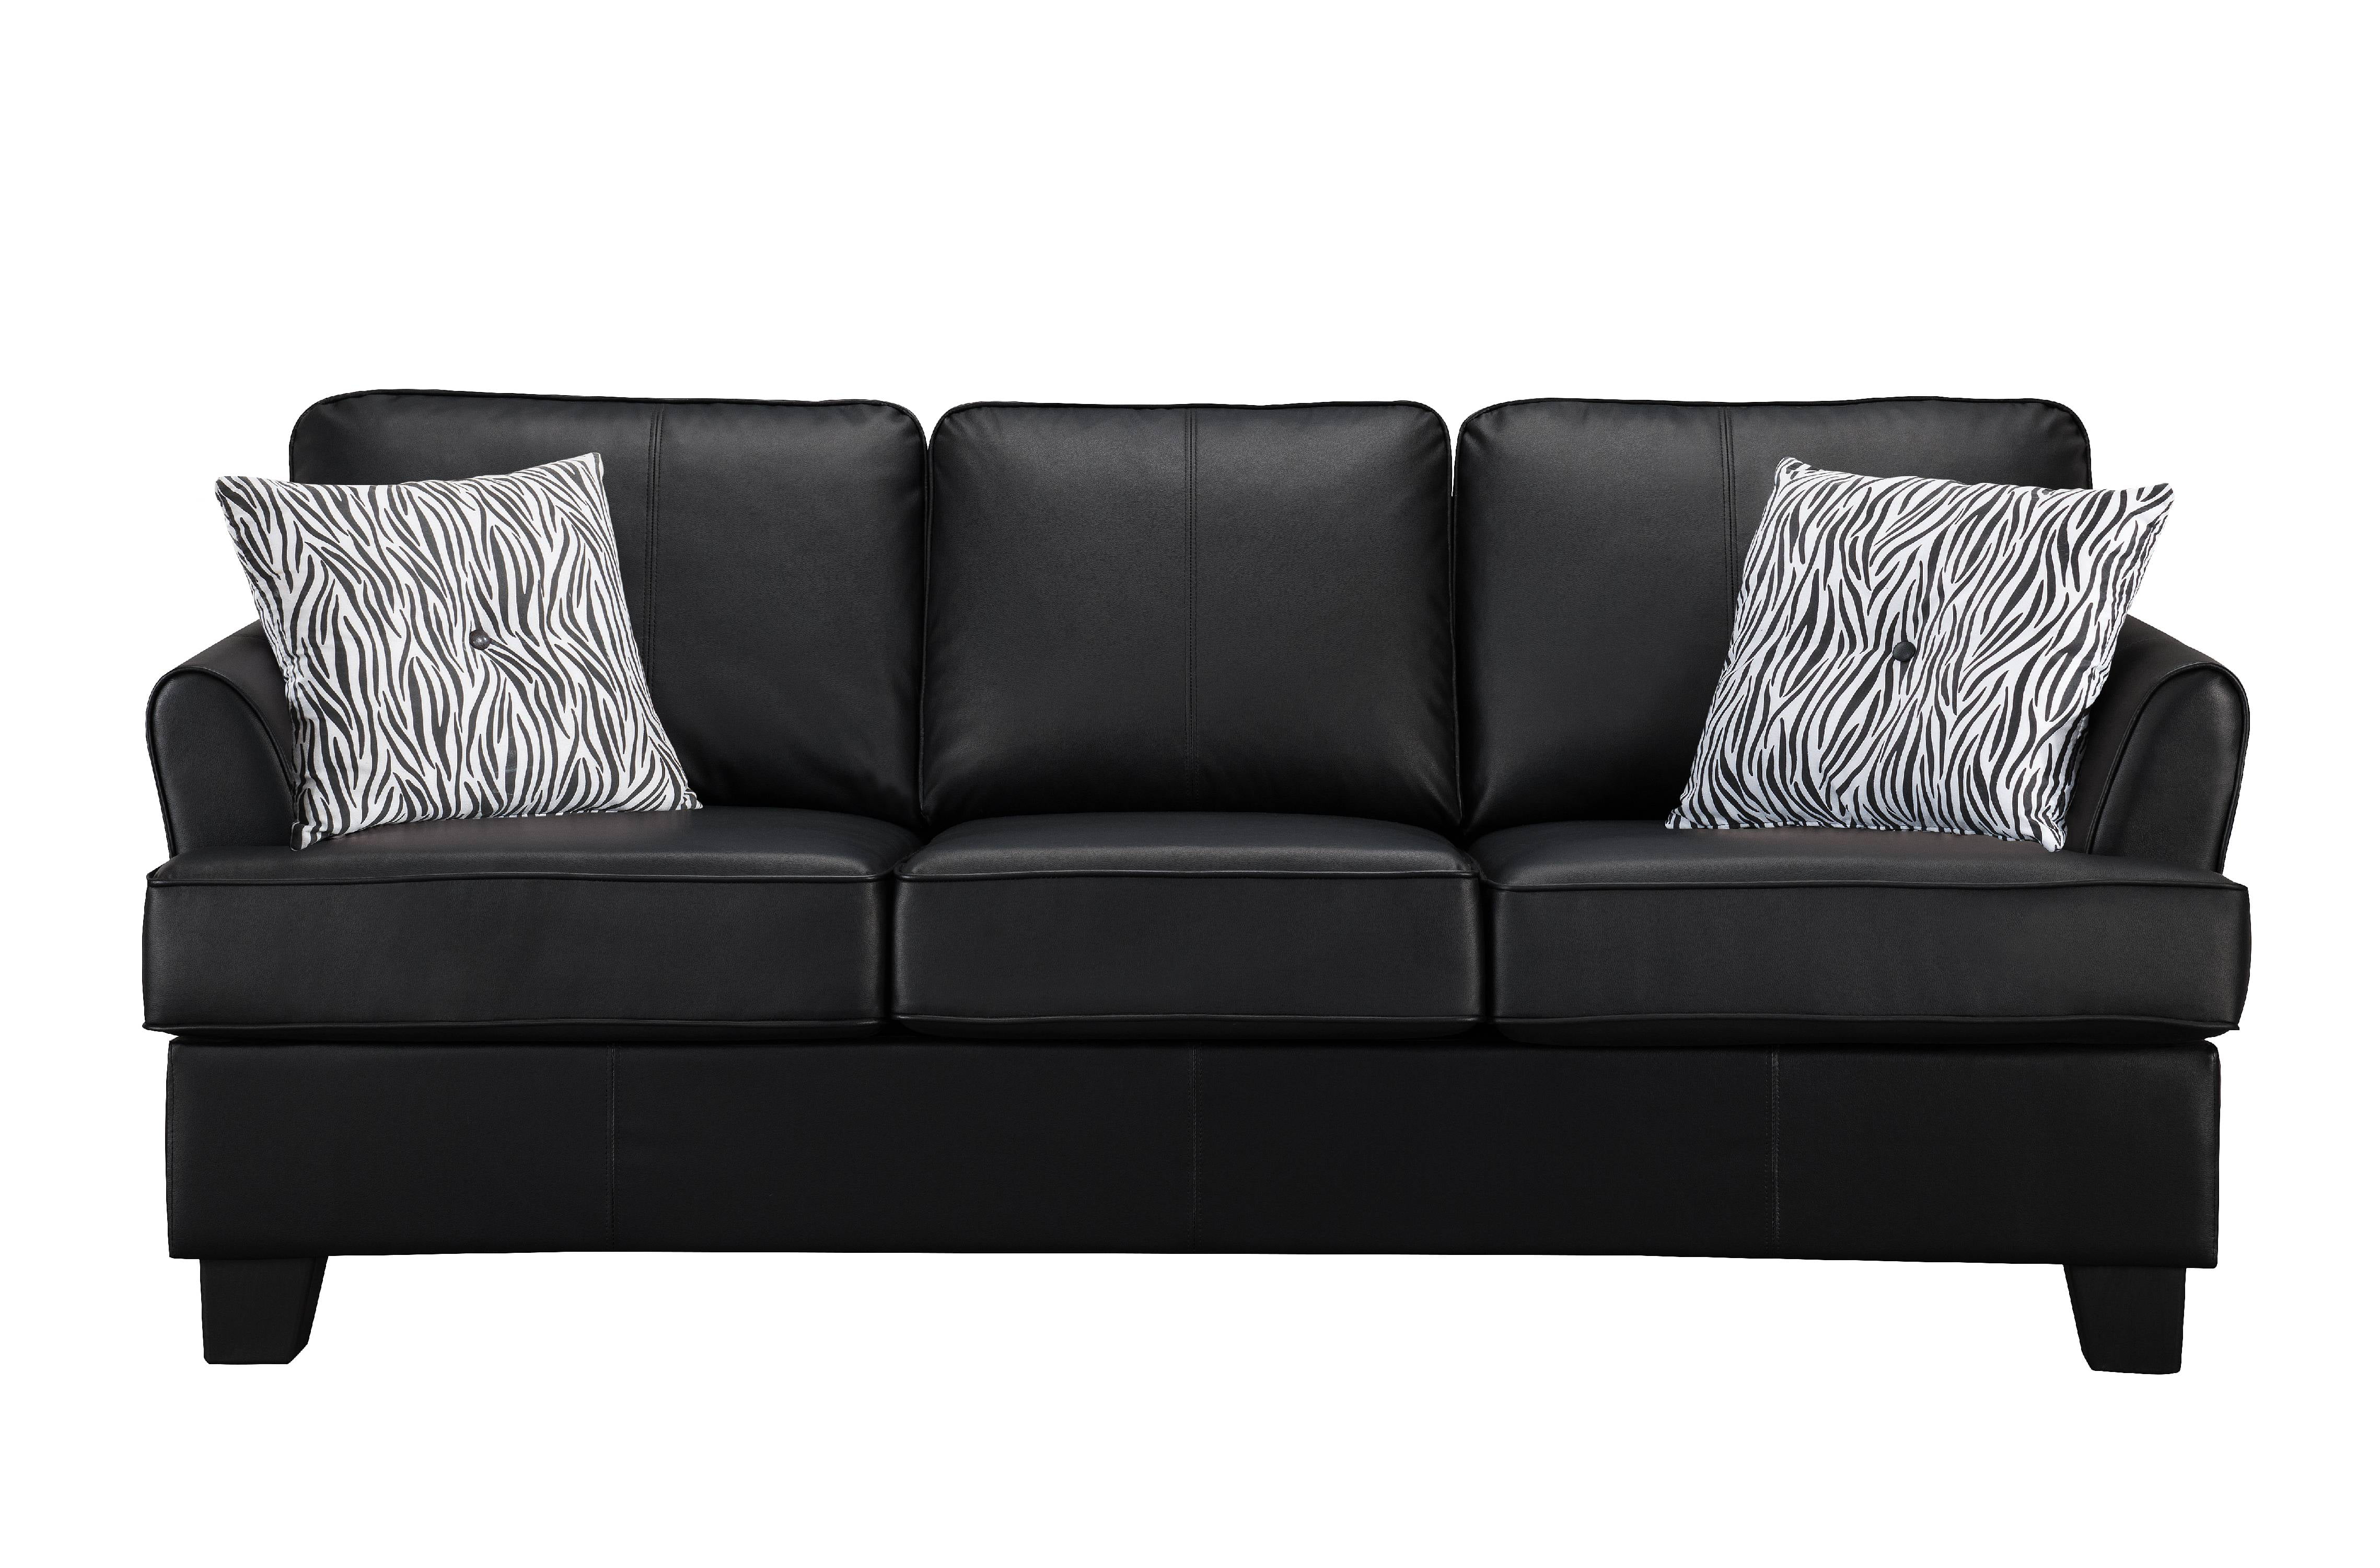 Chantal Queen Size Sleeper Sofa Hide A Bed With Throw